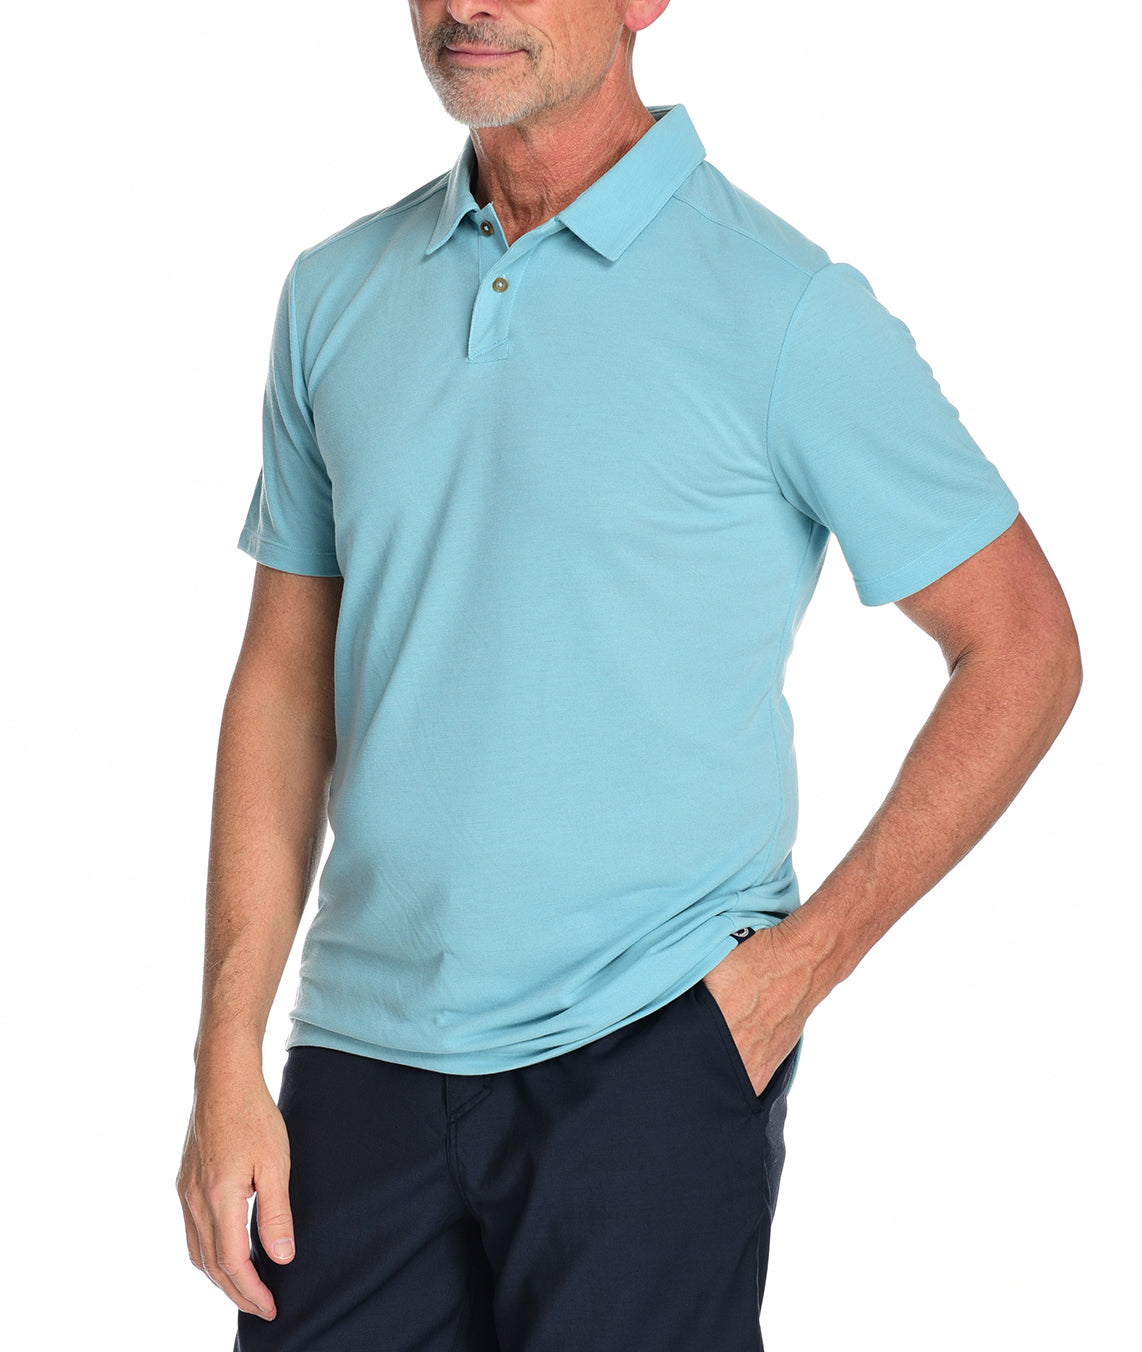 Men's Kent Polo by Fisher + Baker Marina